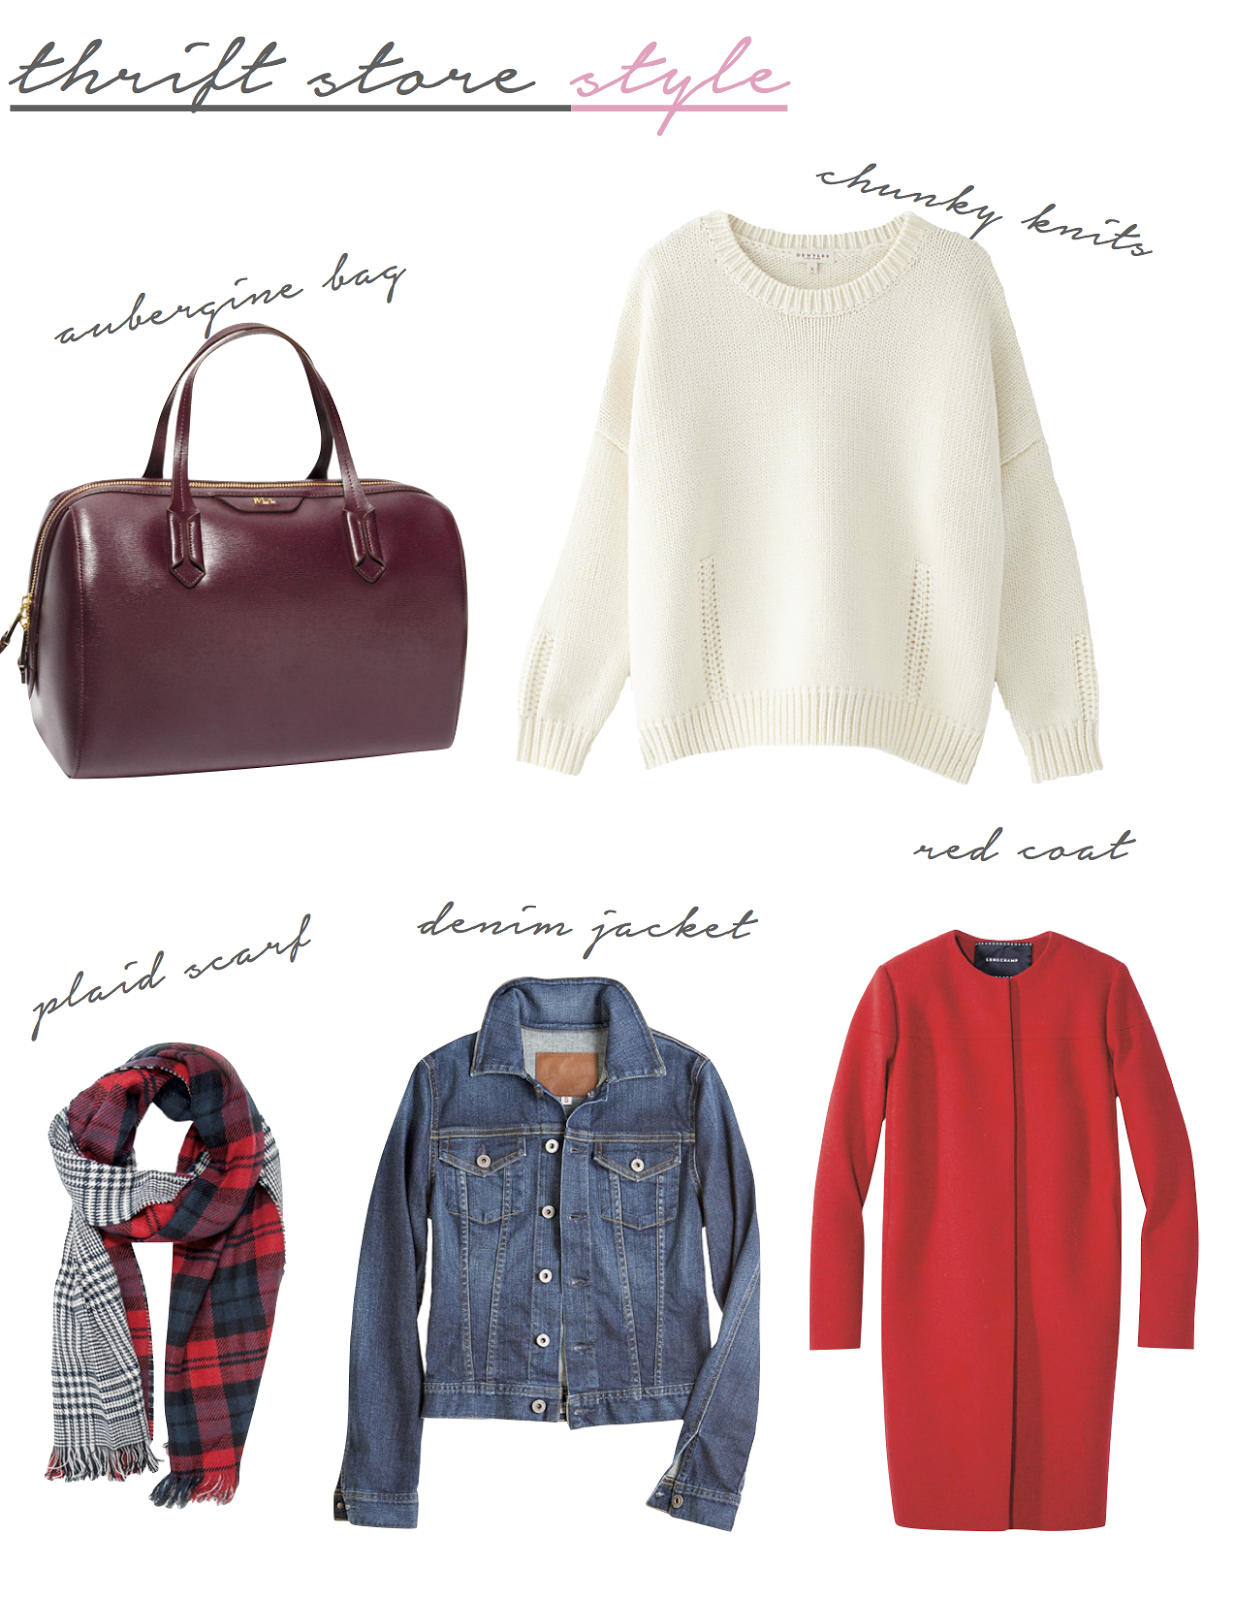 Thrift Store Fall Fashion. Shop second-hand for these fall must haves!